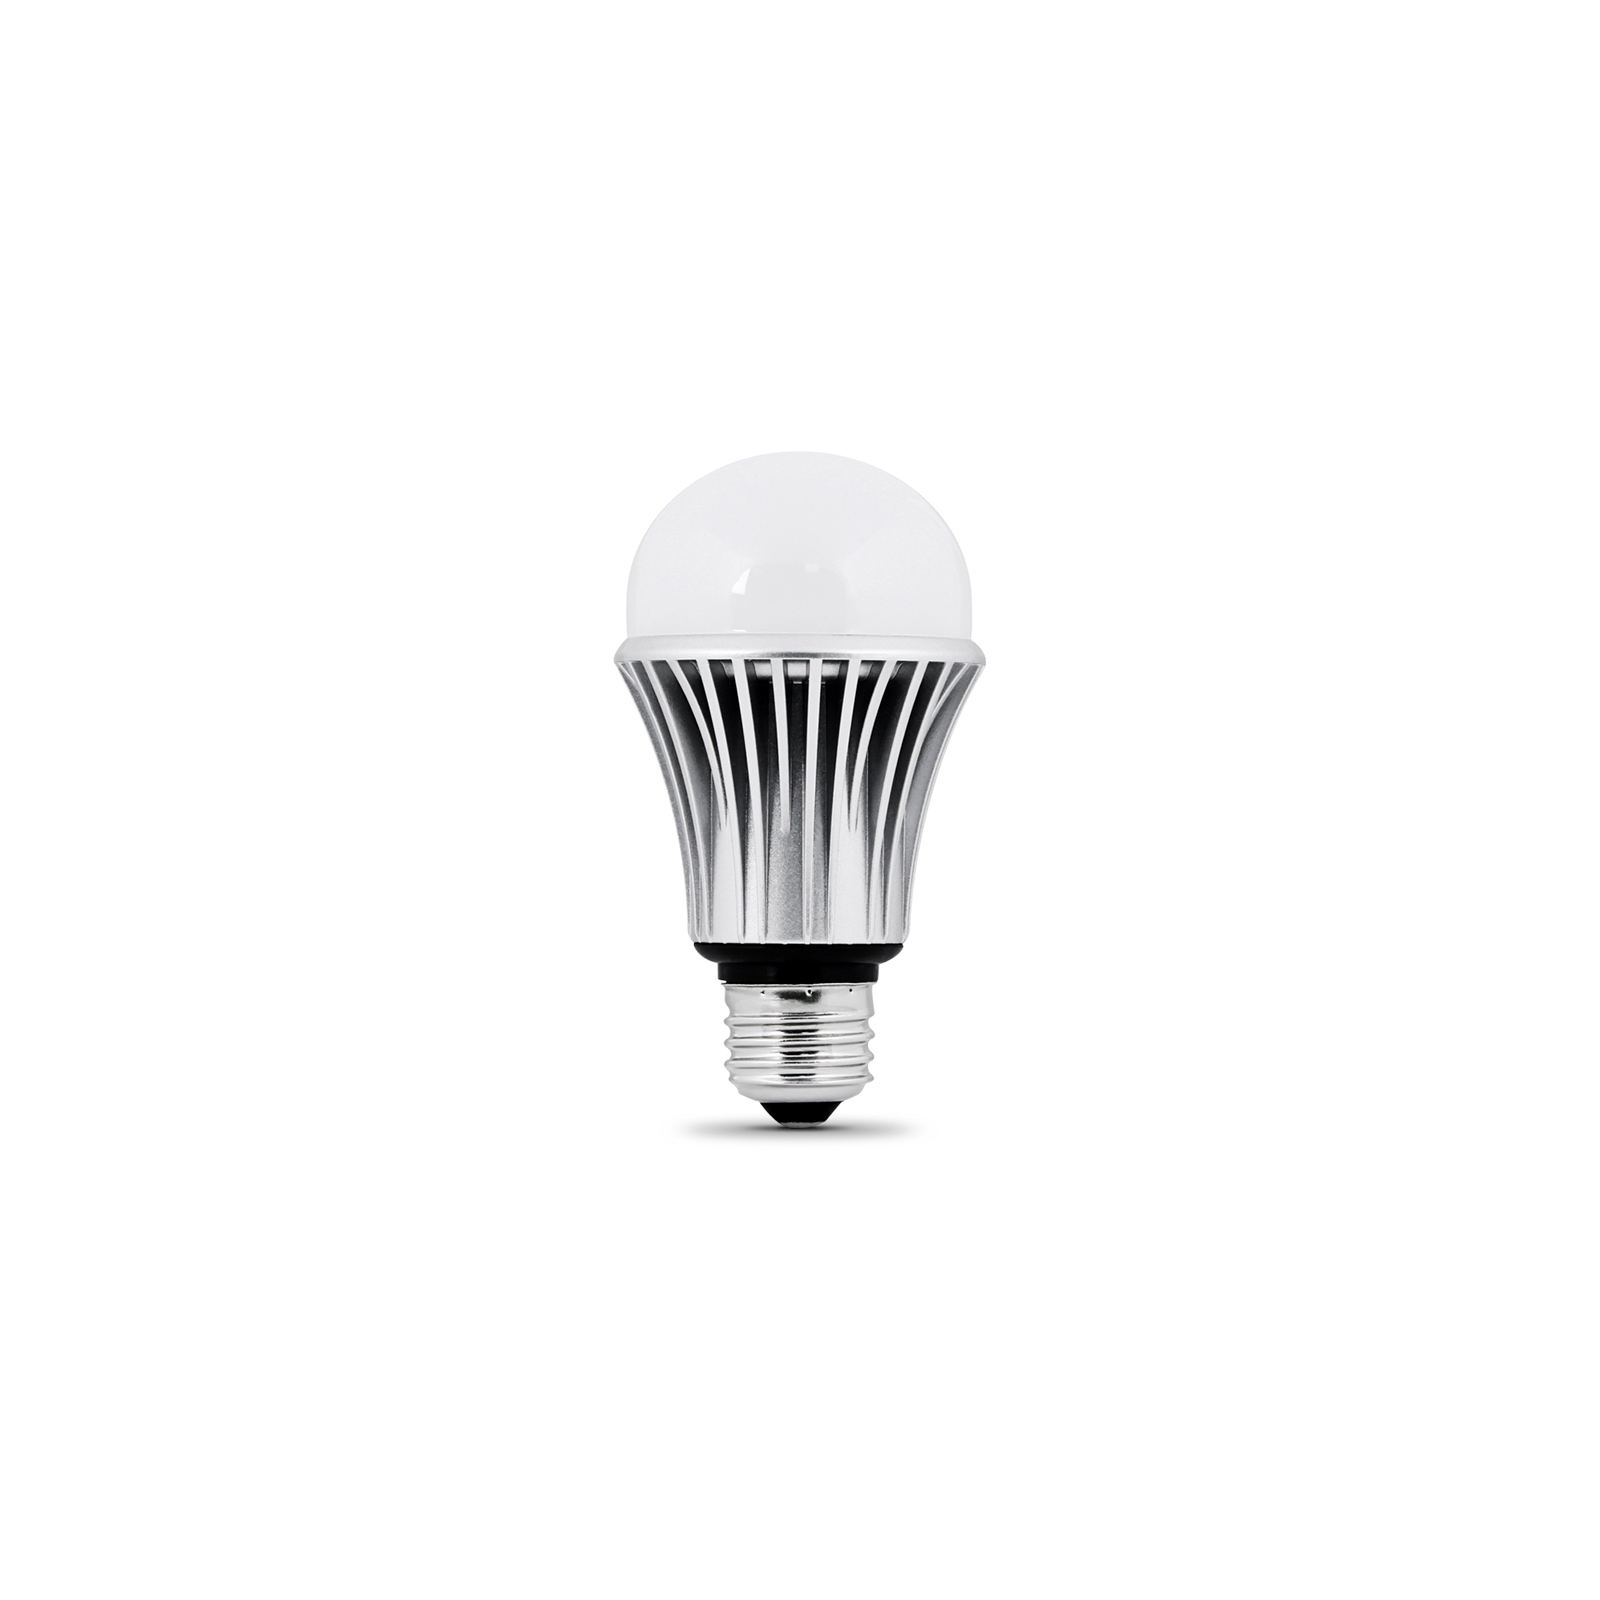 feit electric a19 dm 5k led dimmable a19 7 5 watt light bulb 5000k. Black Bedroom Furniture Sets. Home Design Ideas